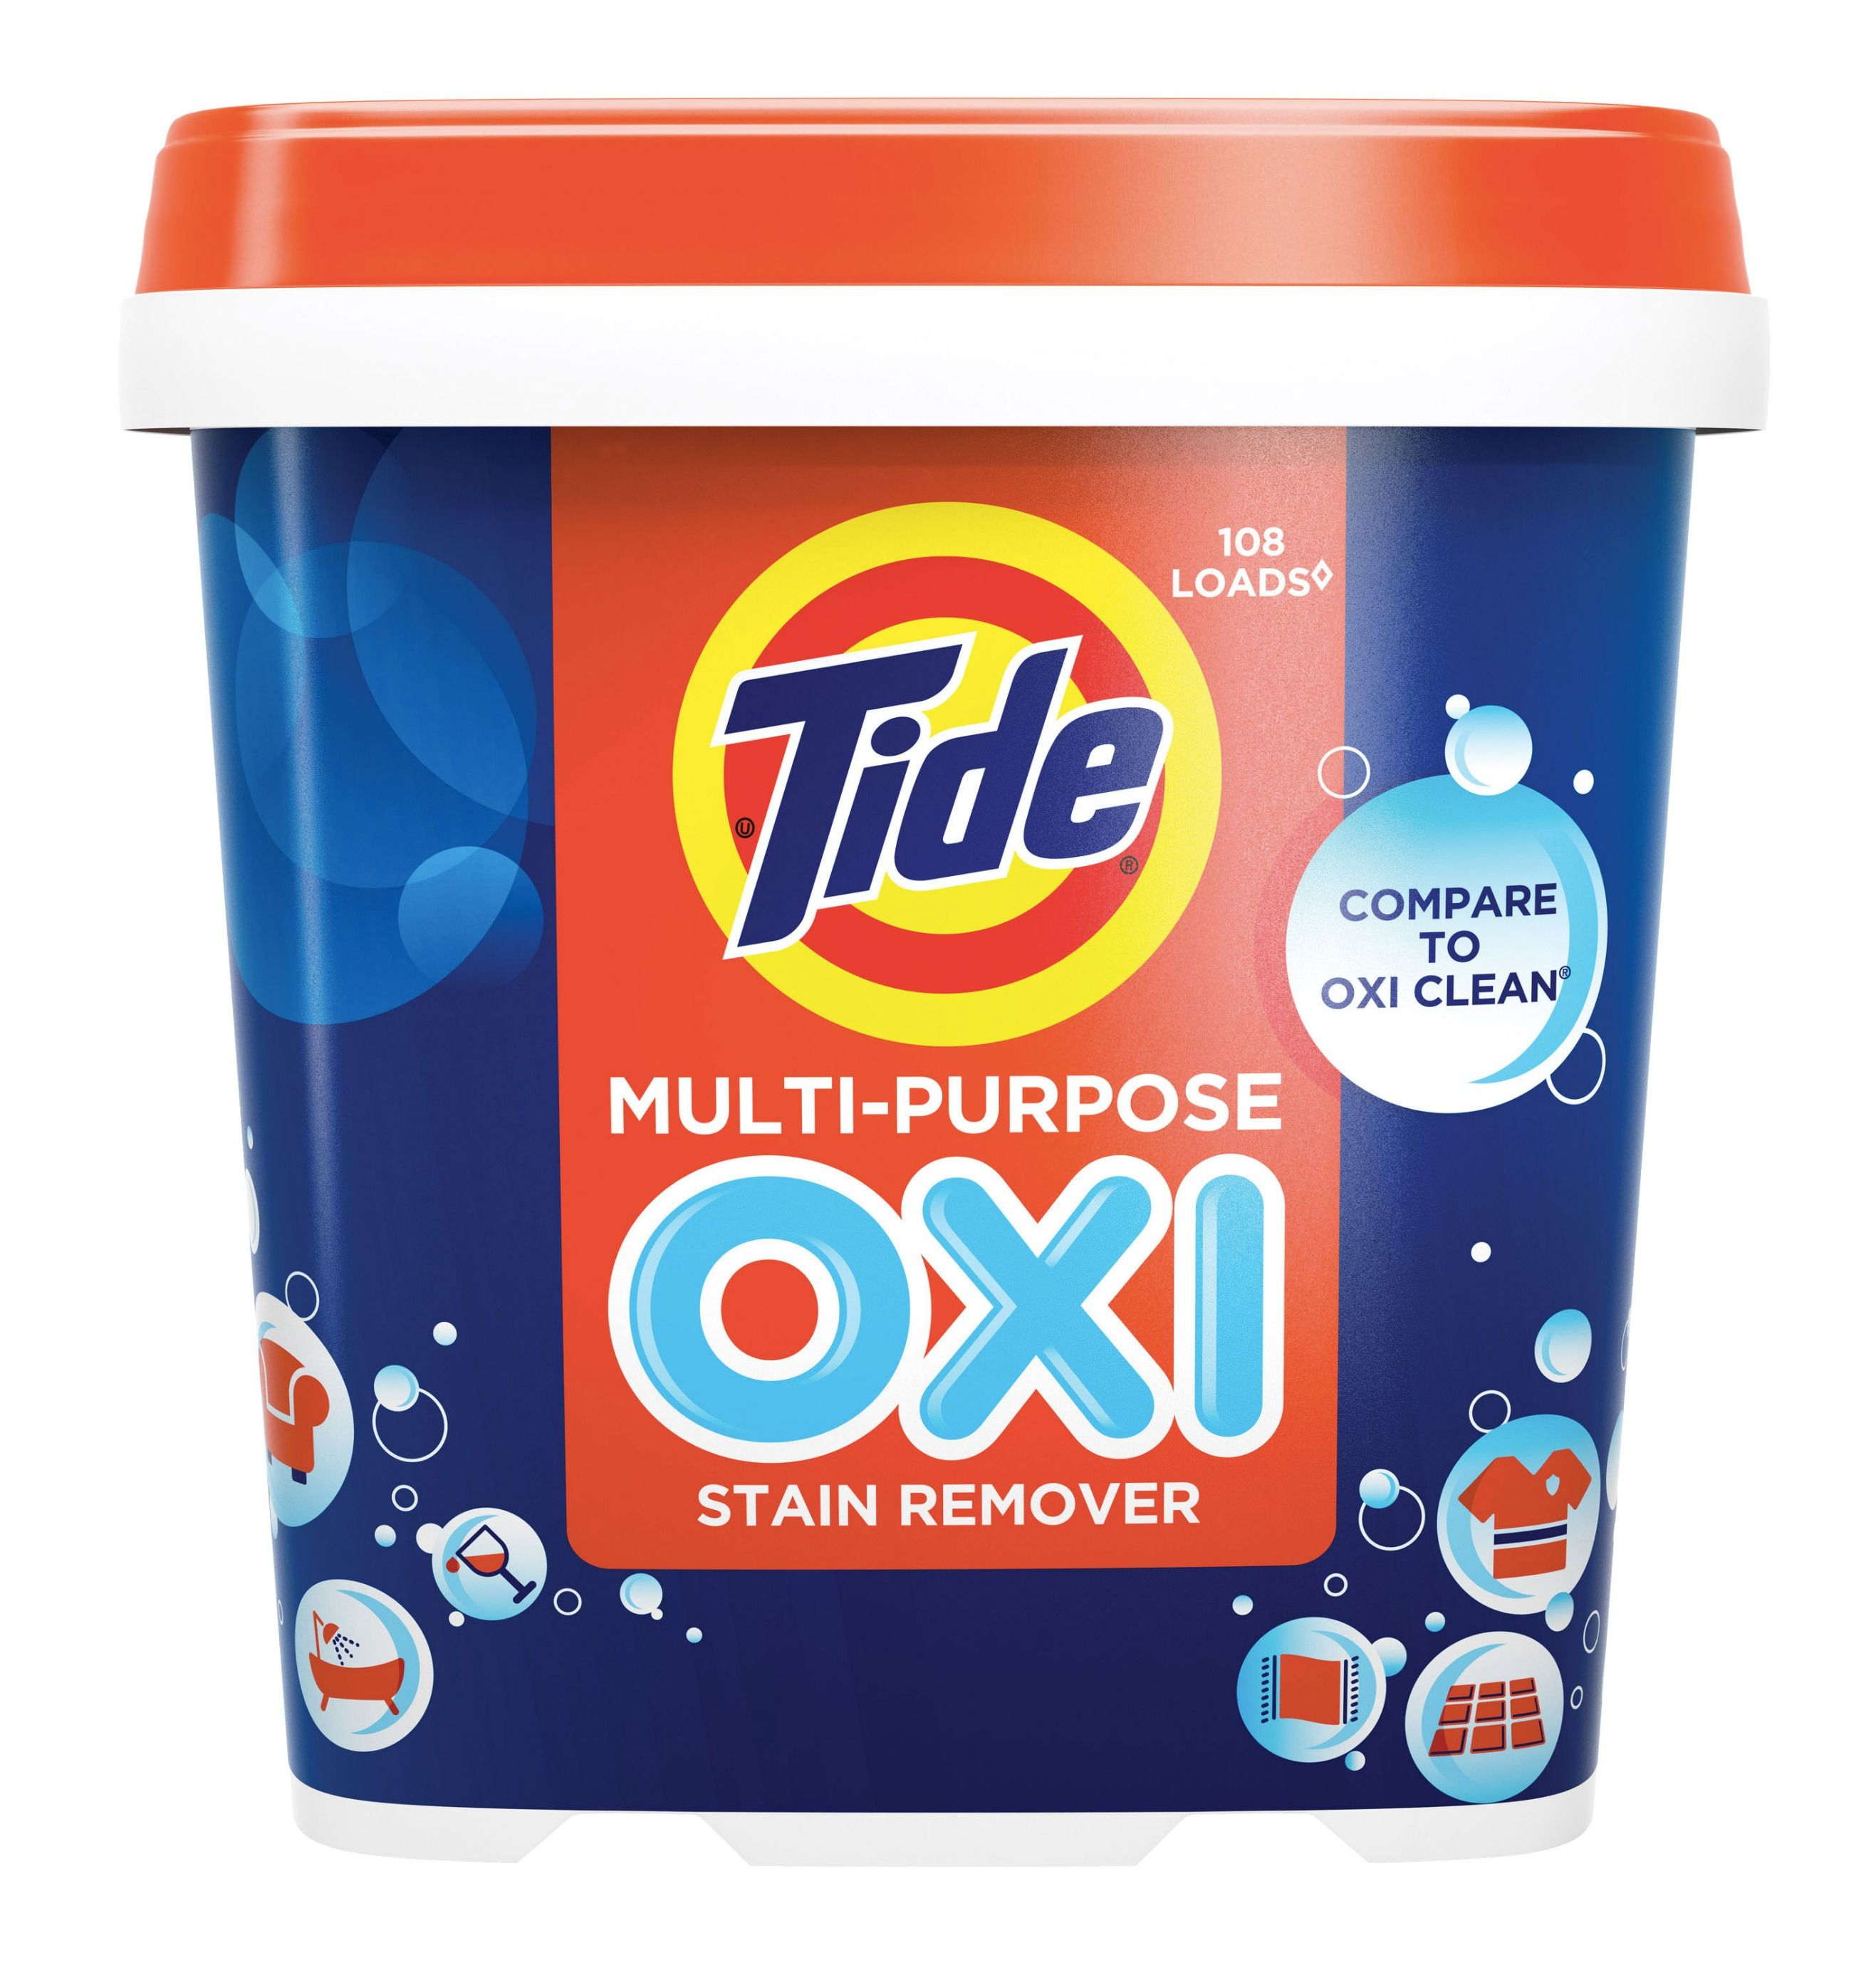 Tide Oxi Multi Purpose Stain Remover Stain Remover Cleaning Stain